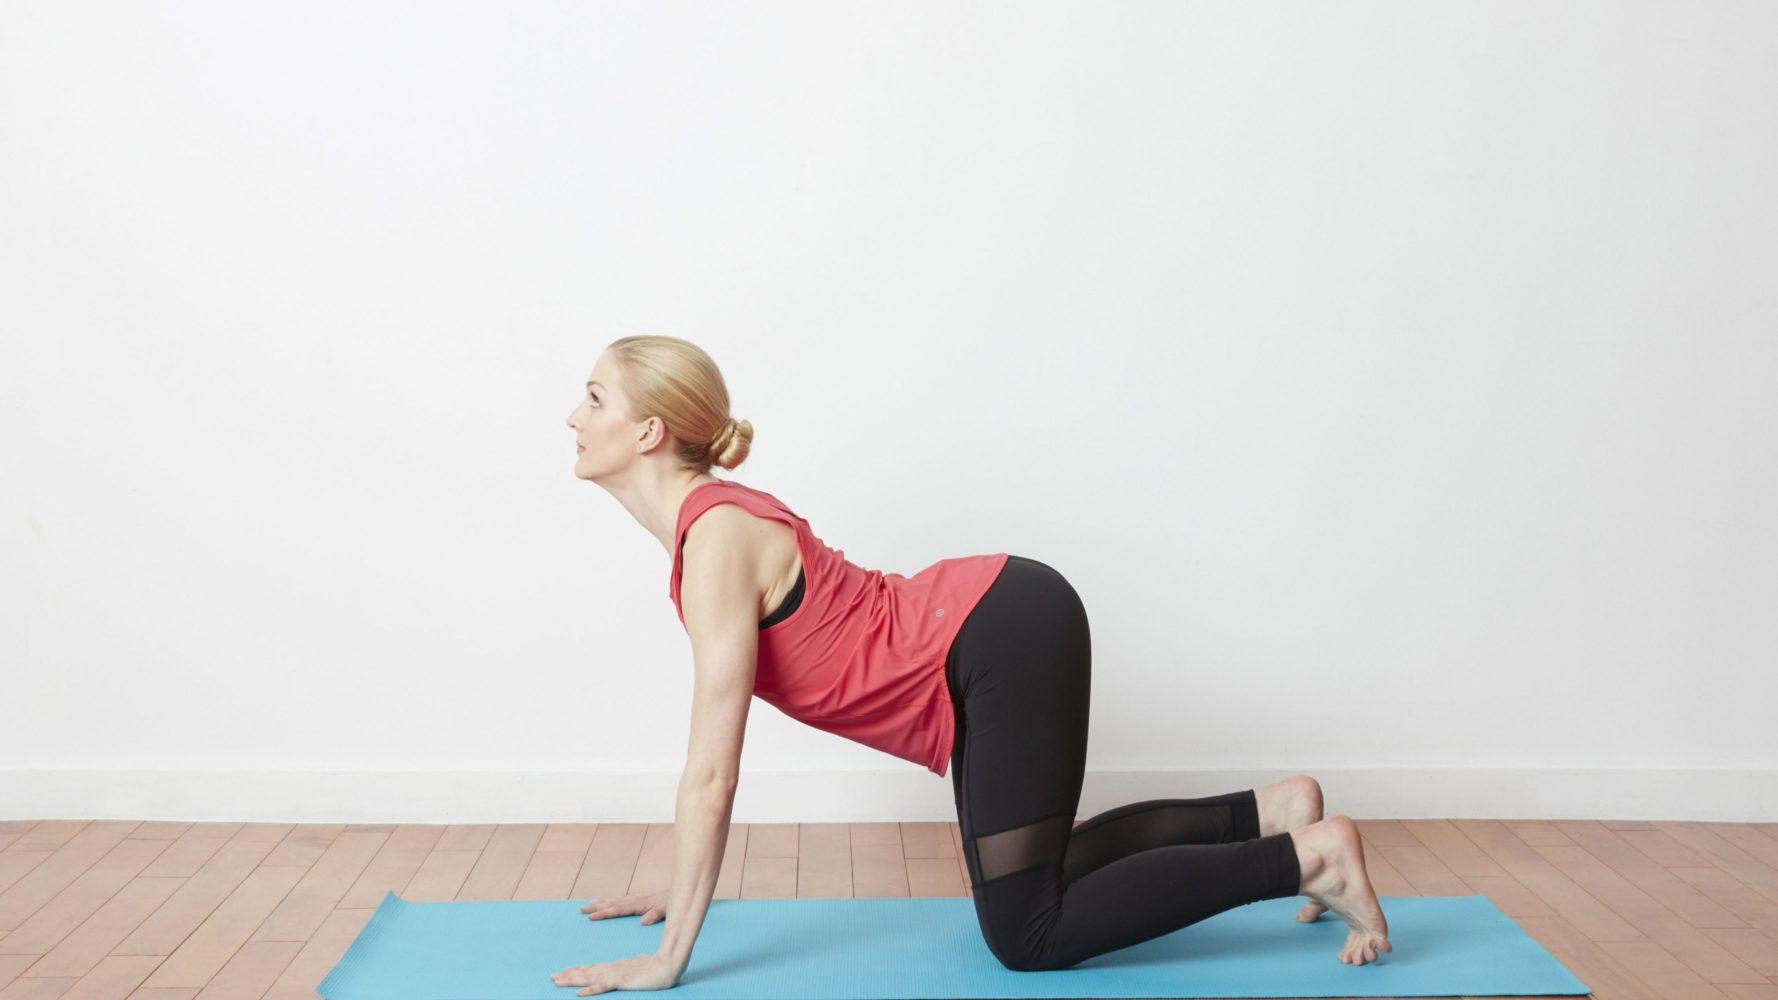 pilate exercises for back pain - Home Physio Group